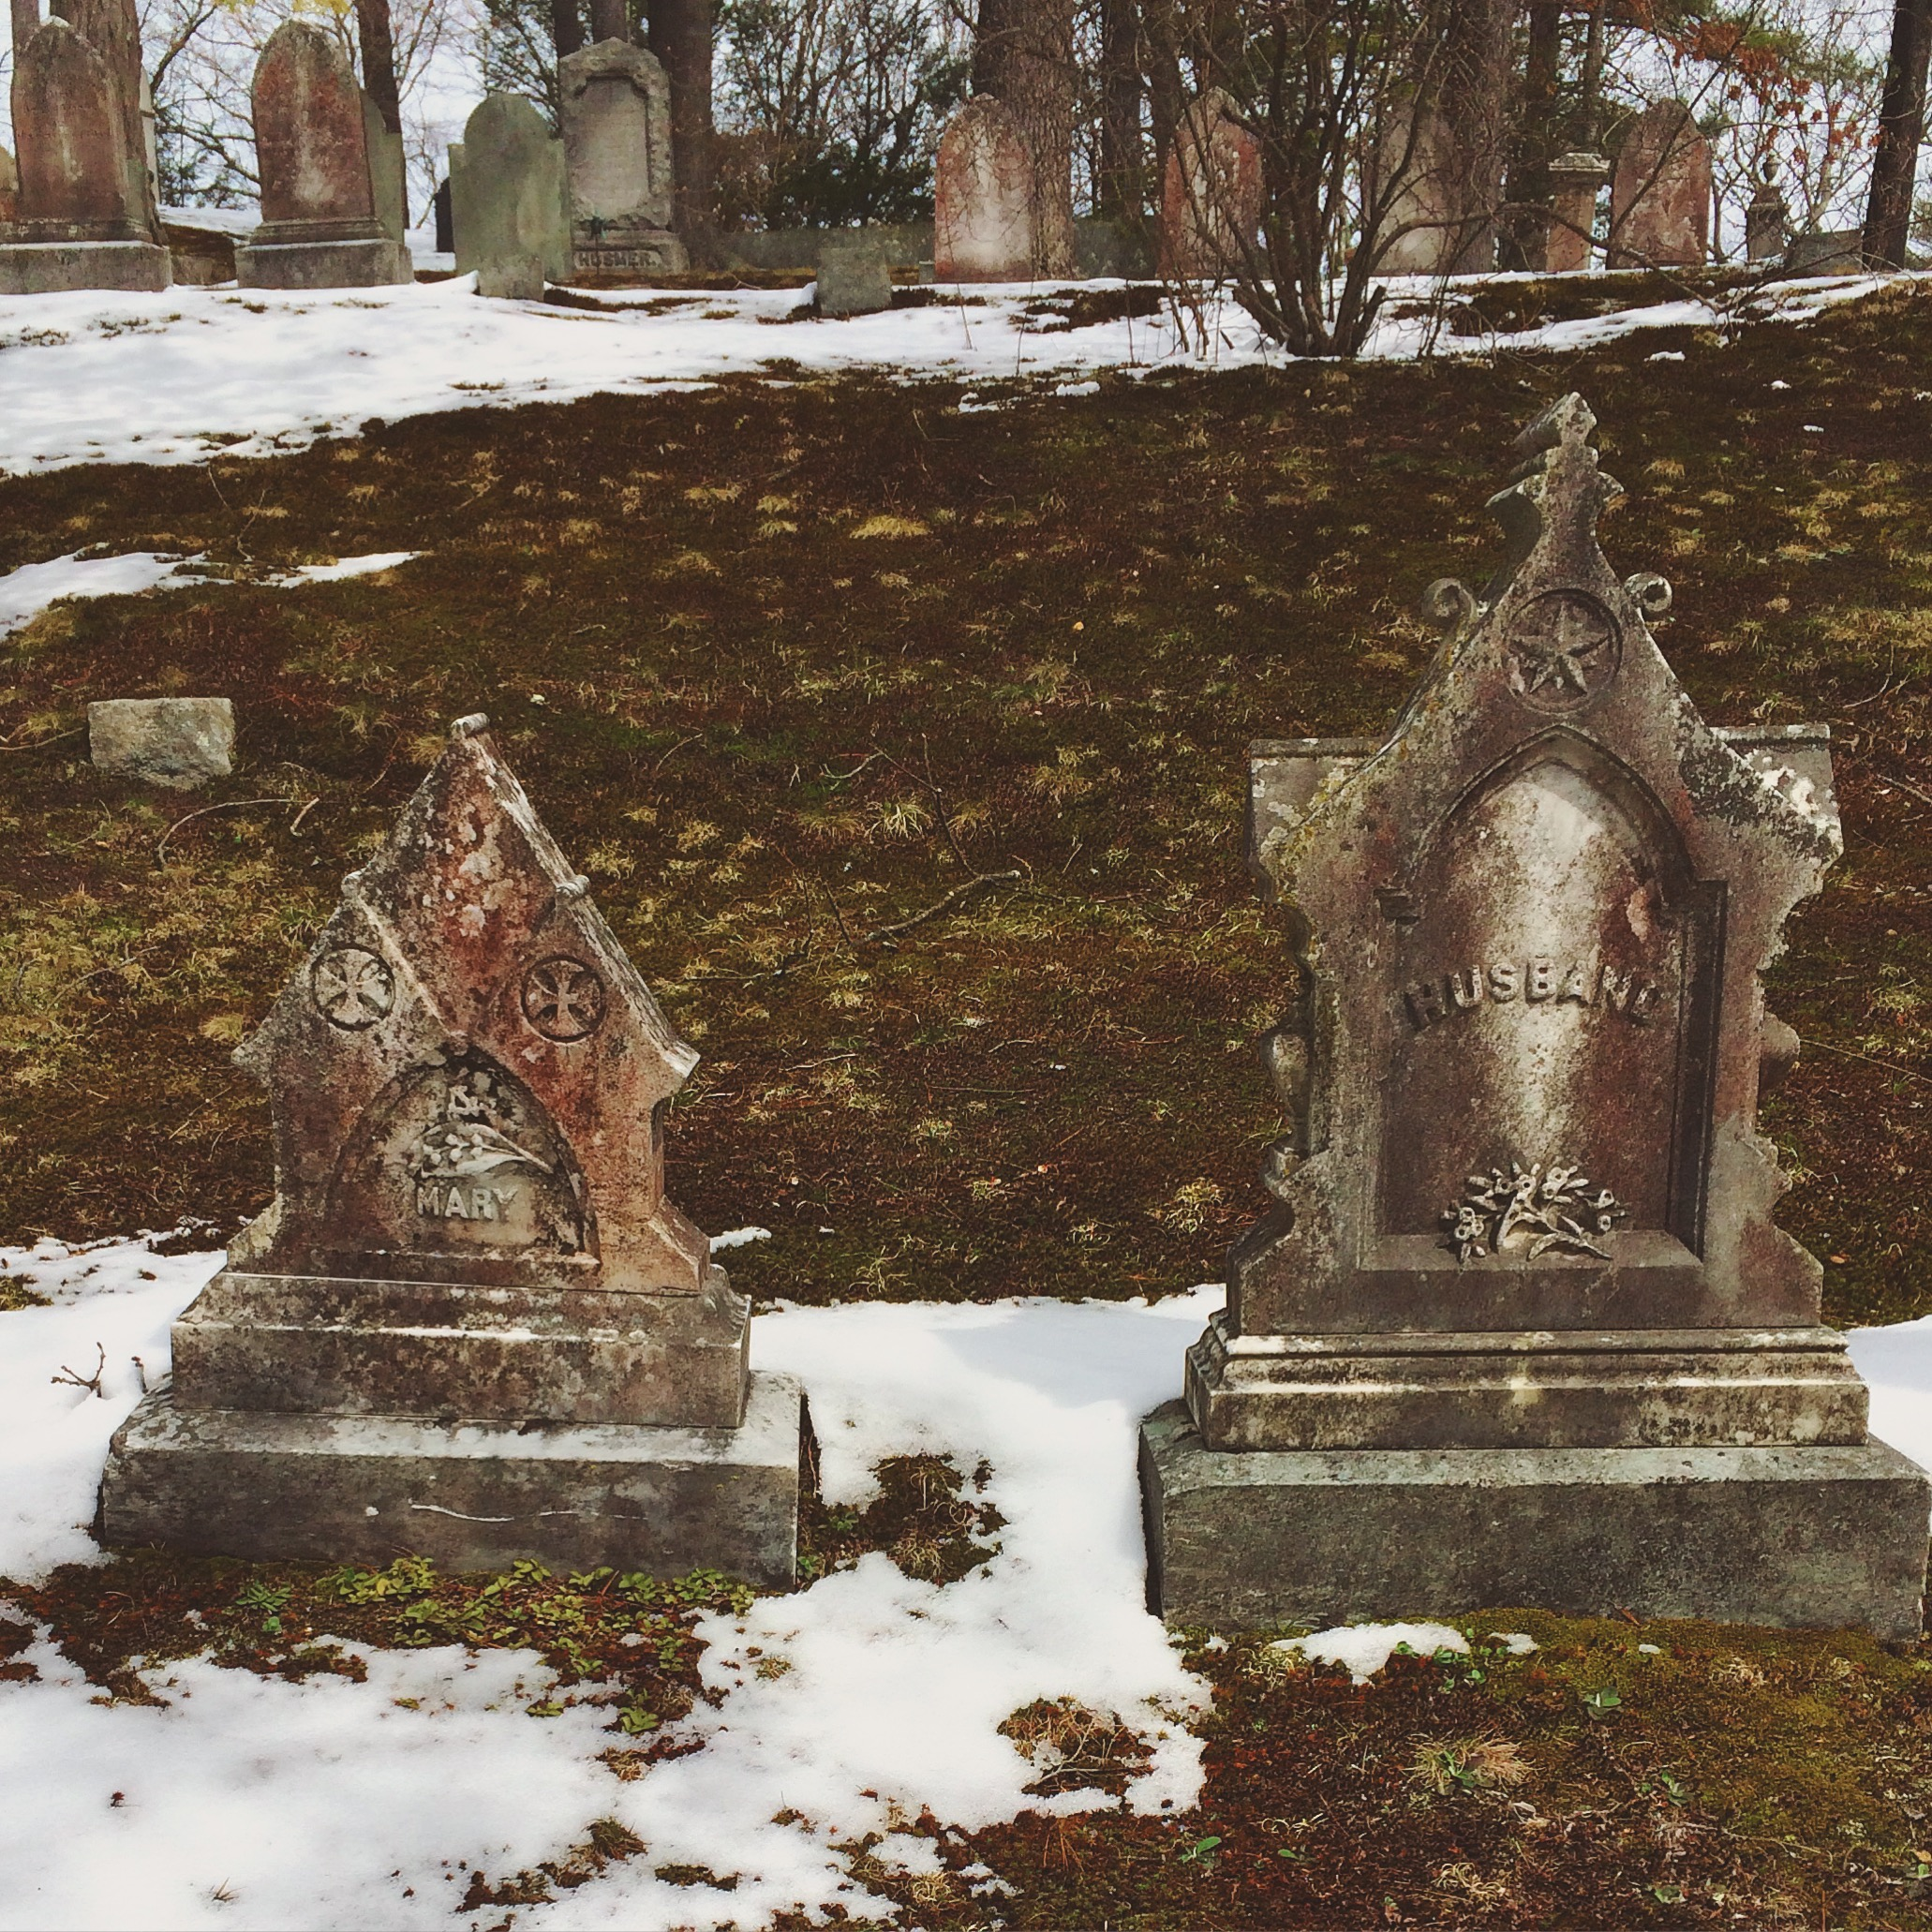 two small but ornate gravestones stand amidst the patchy snow and bare ground. a row of other old gravestones stand in the background